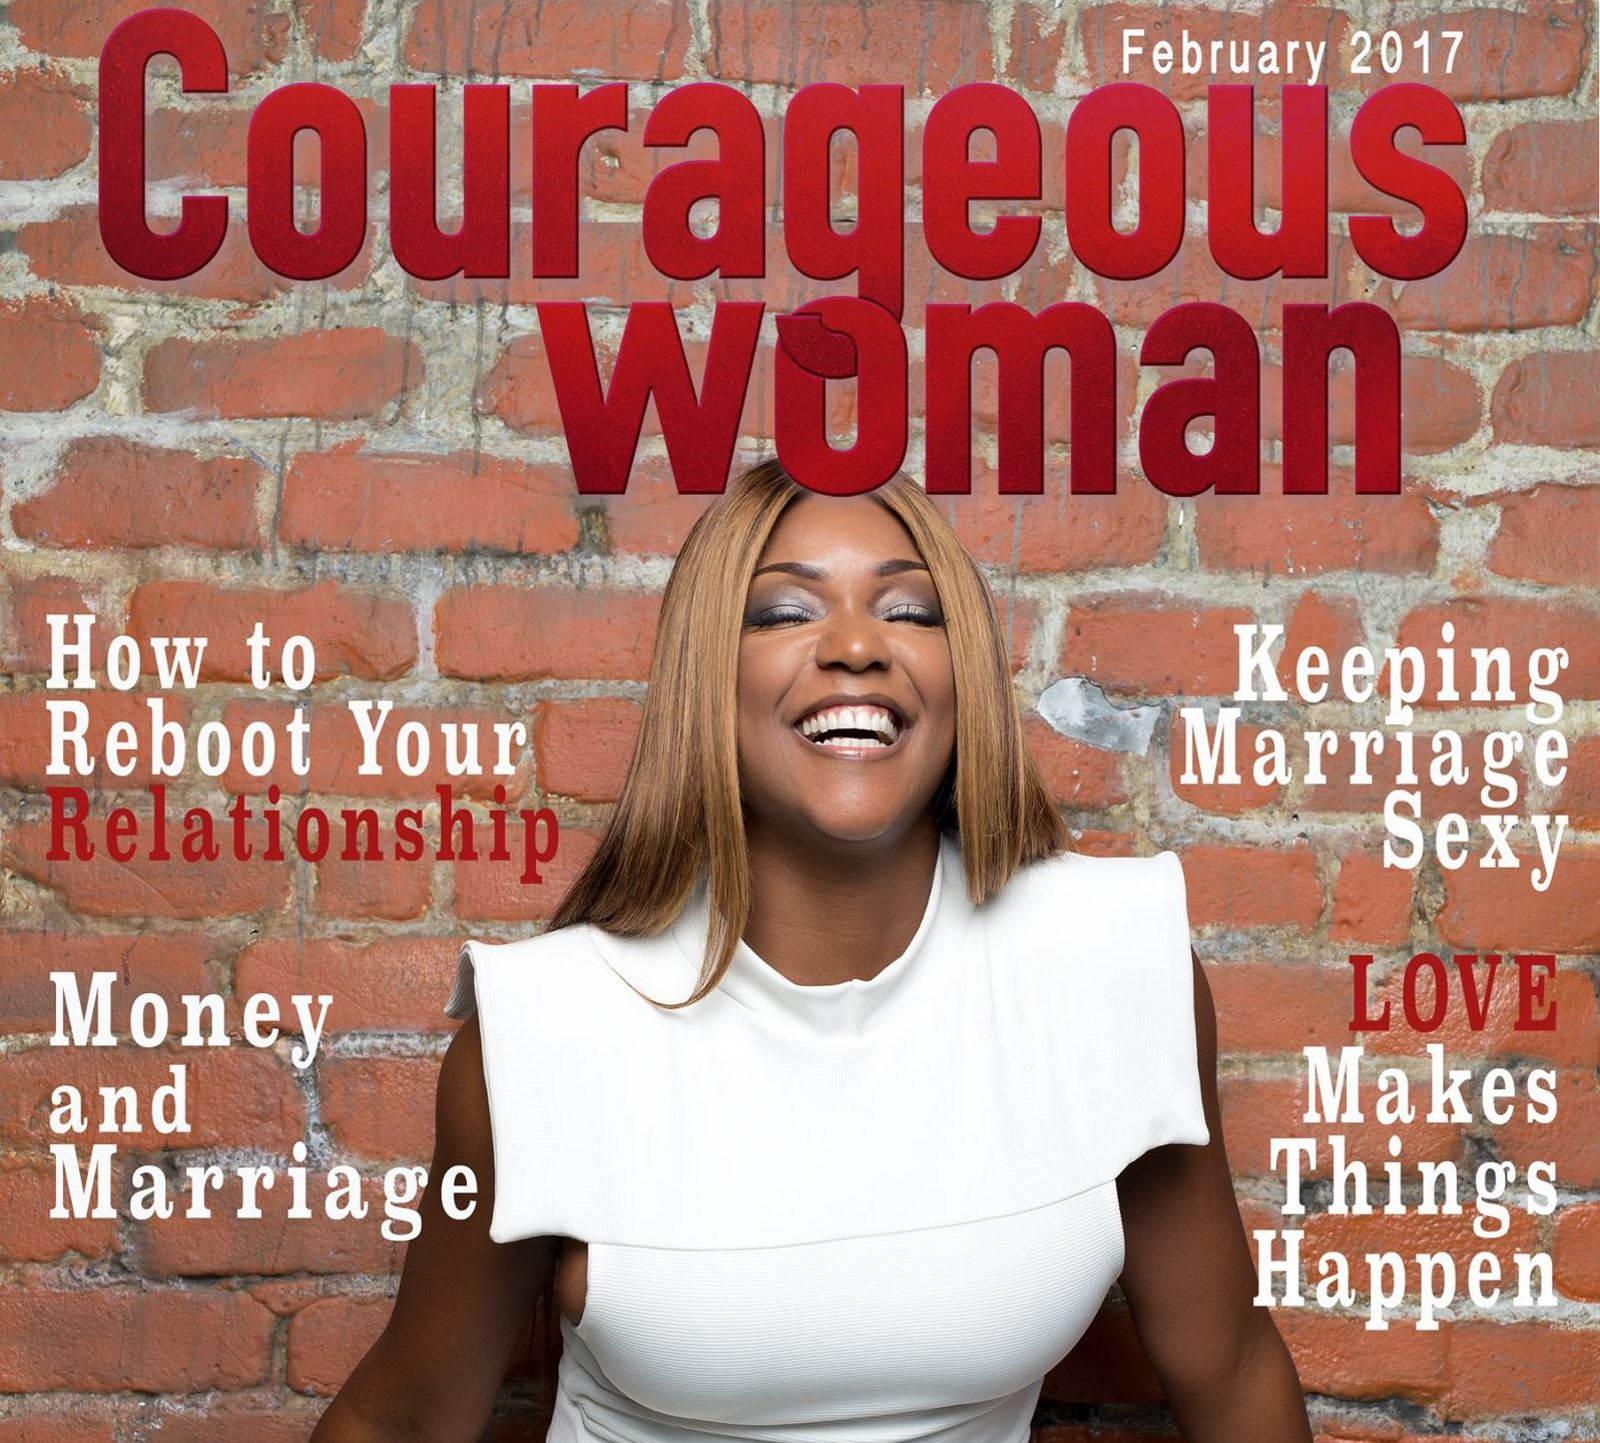 Courageous Woman Magazine Cover Story: A Conversation with Ms. Hitch The Mental Toughness Love Coach